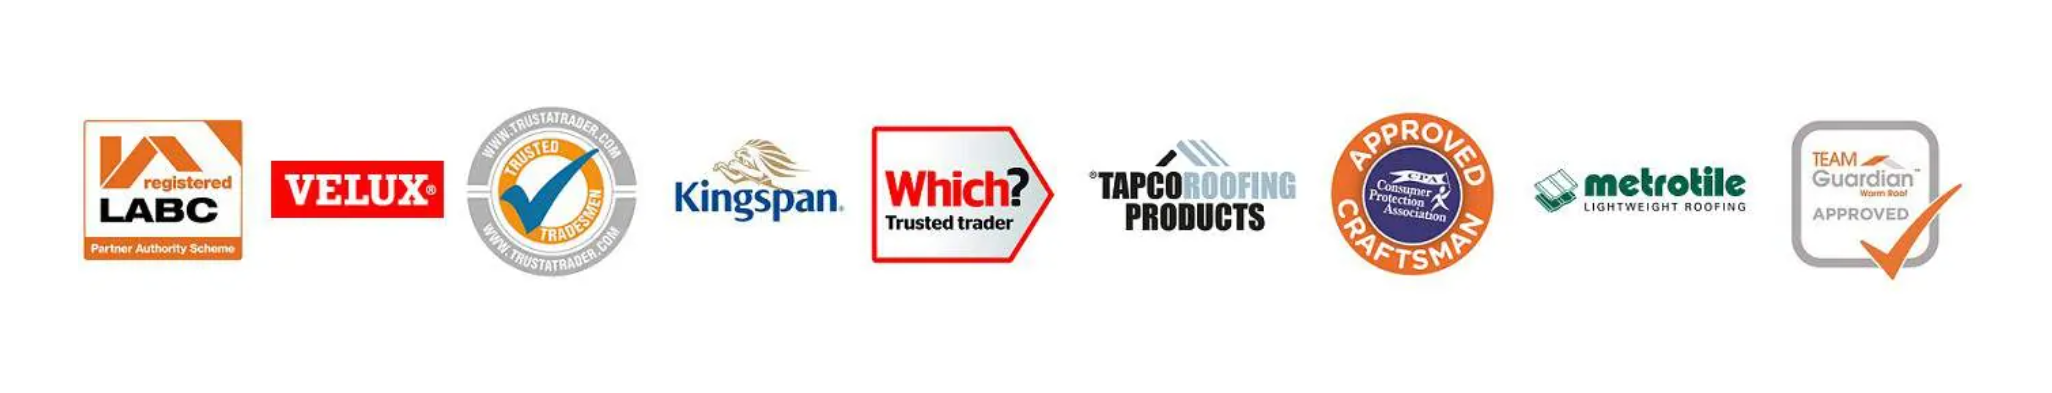 Projects 4 Roofing many accreditations including LABC and Team Guardian